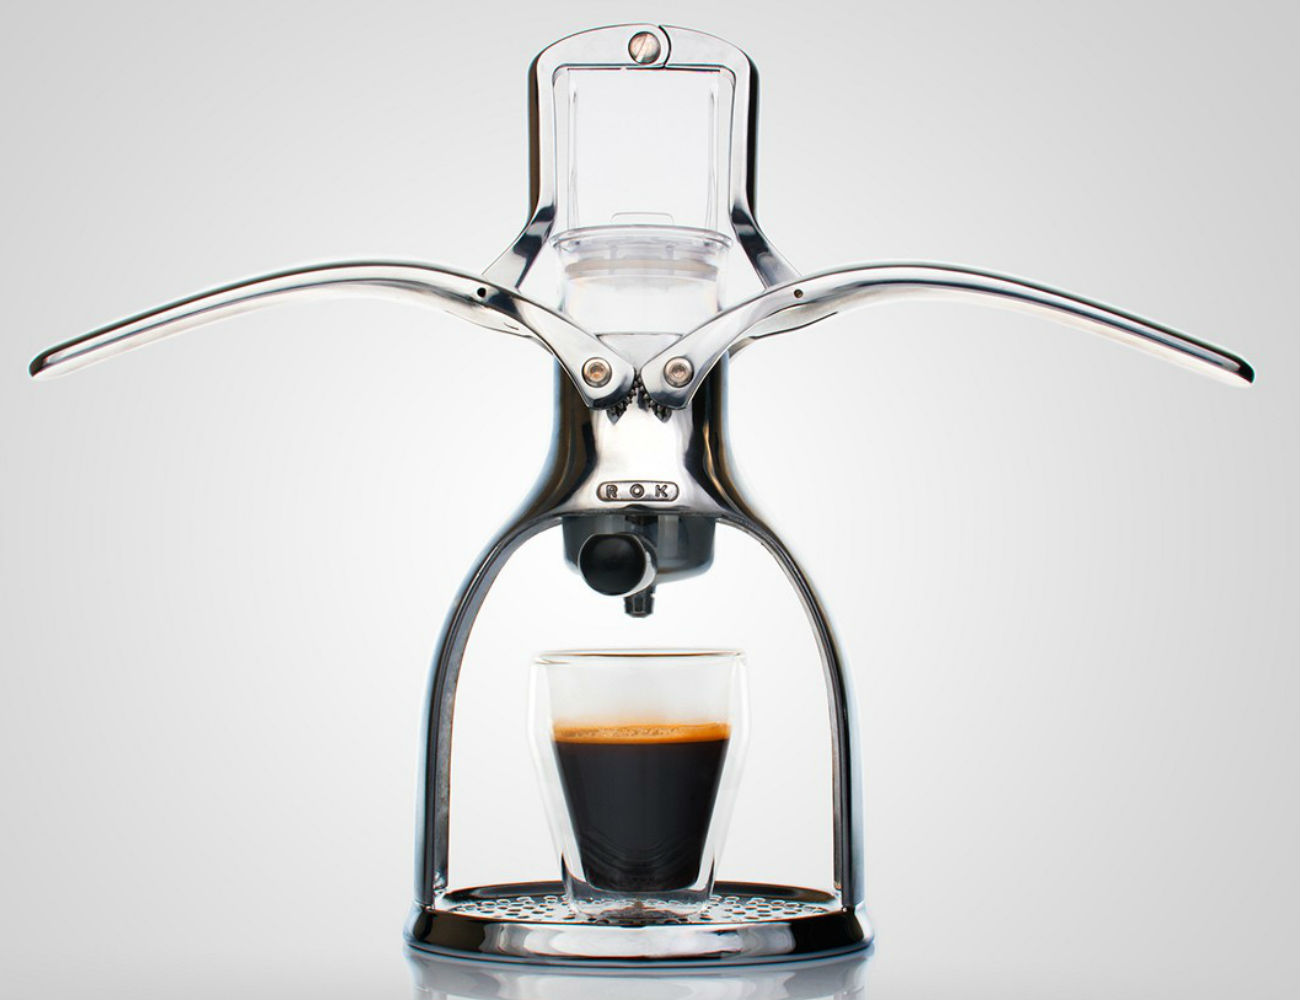 ROK Espresso Maker - With a Manual, Non-Electric Design Review The Gadget Flow